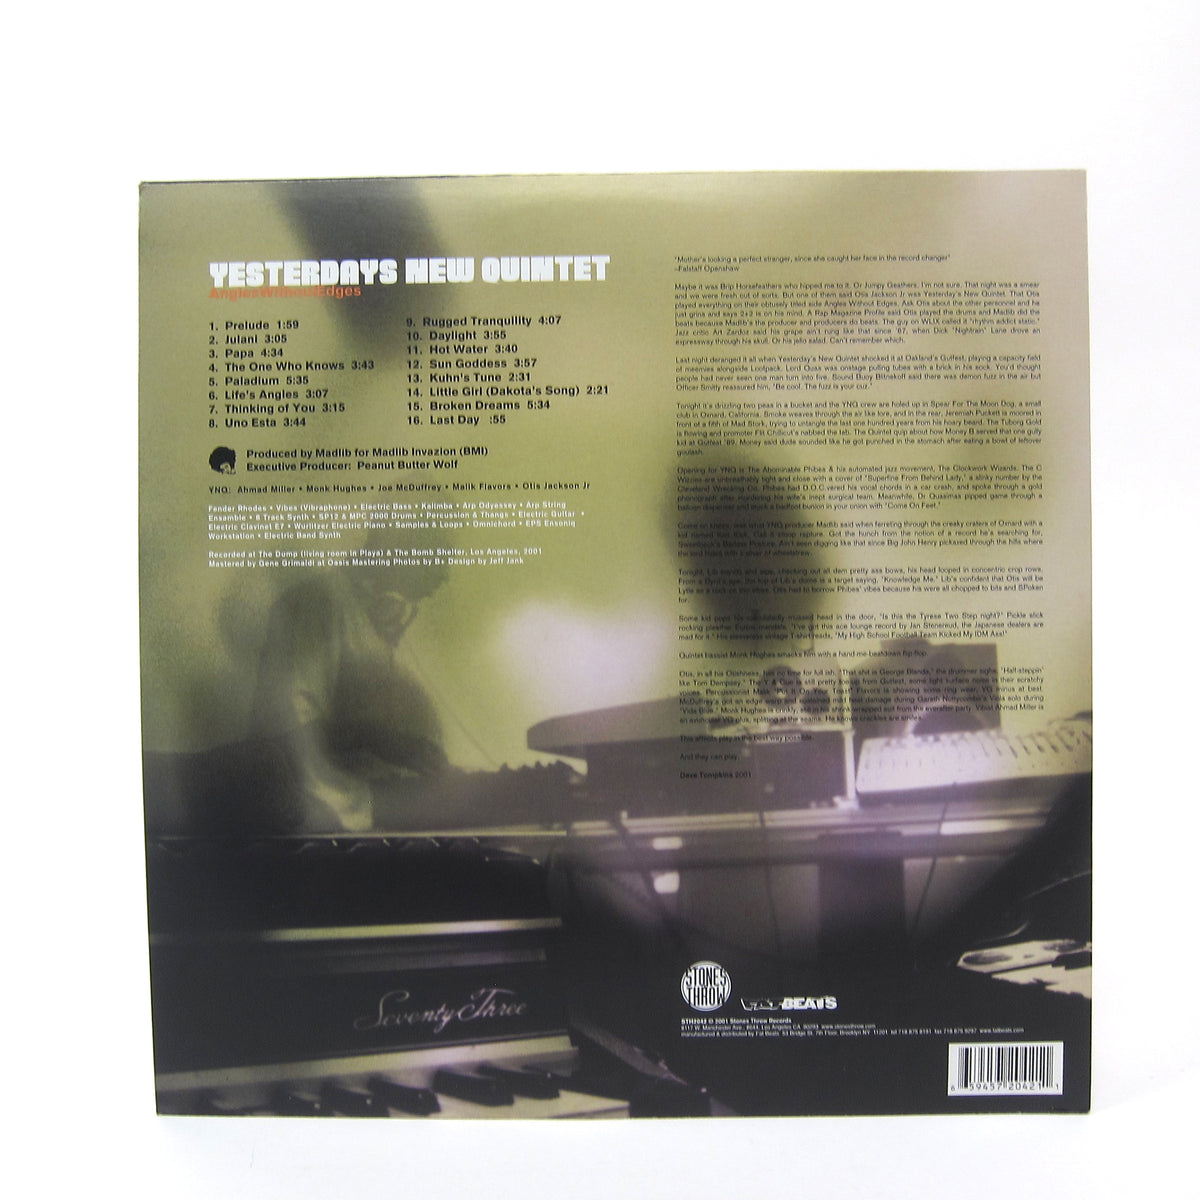 Yesterday's New Quintet: Angles Without Edges (Madlib) Vinyl 2LP